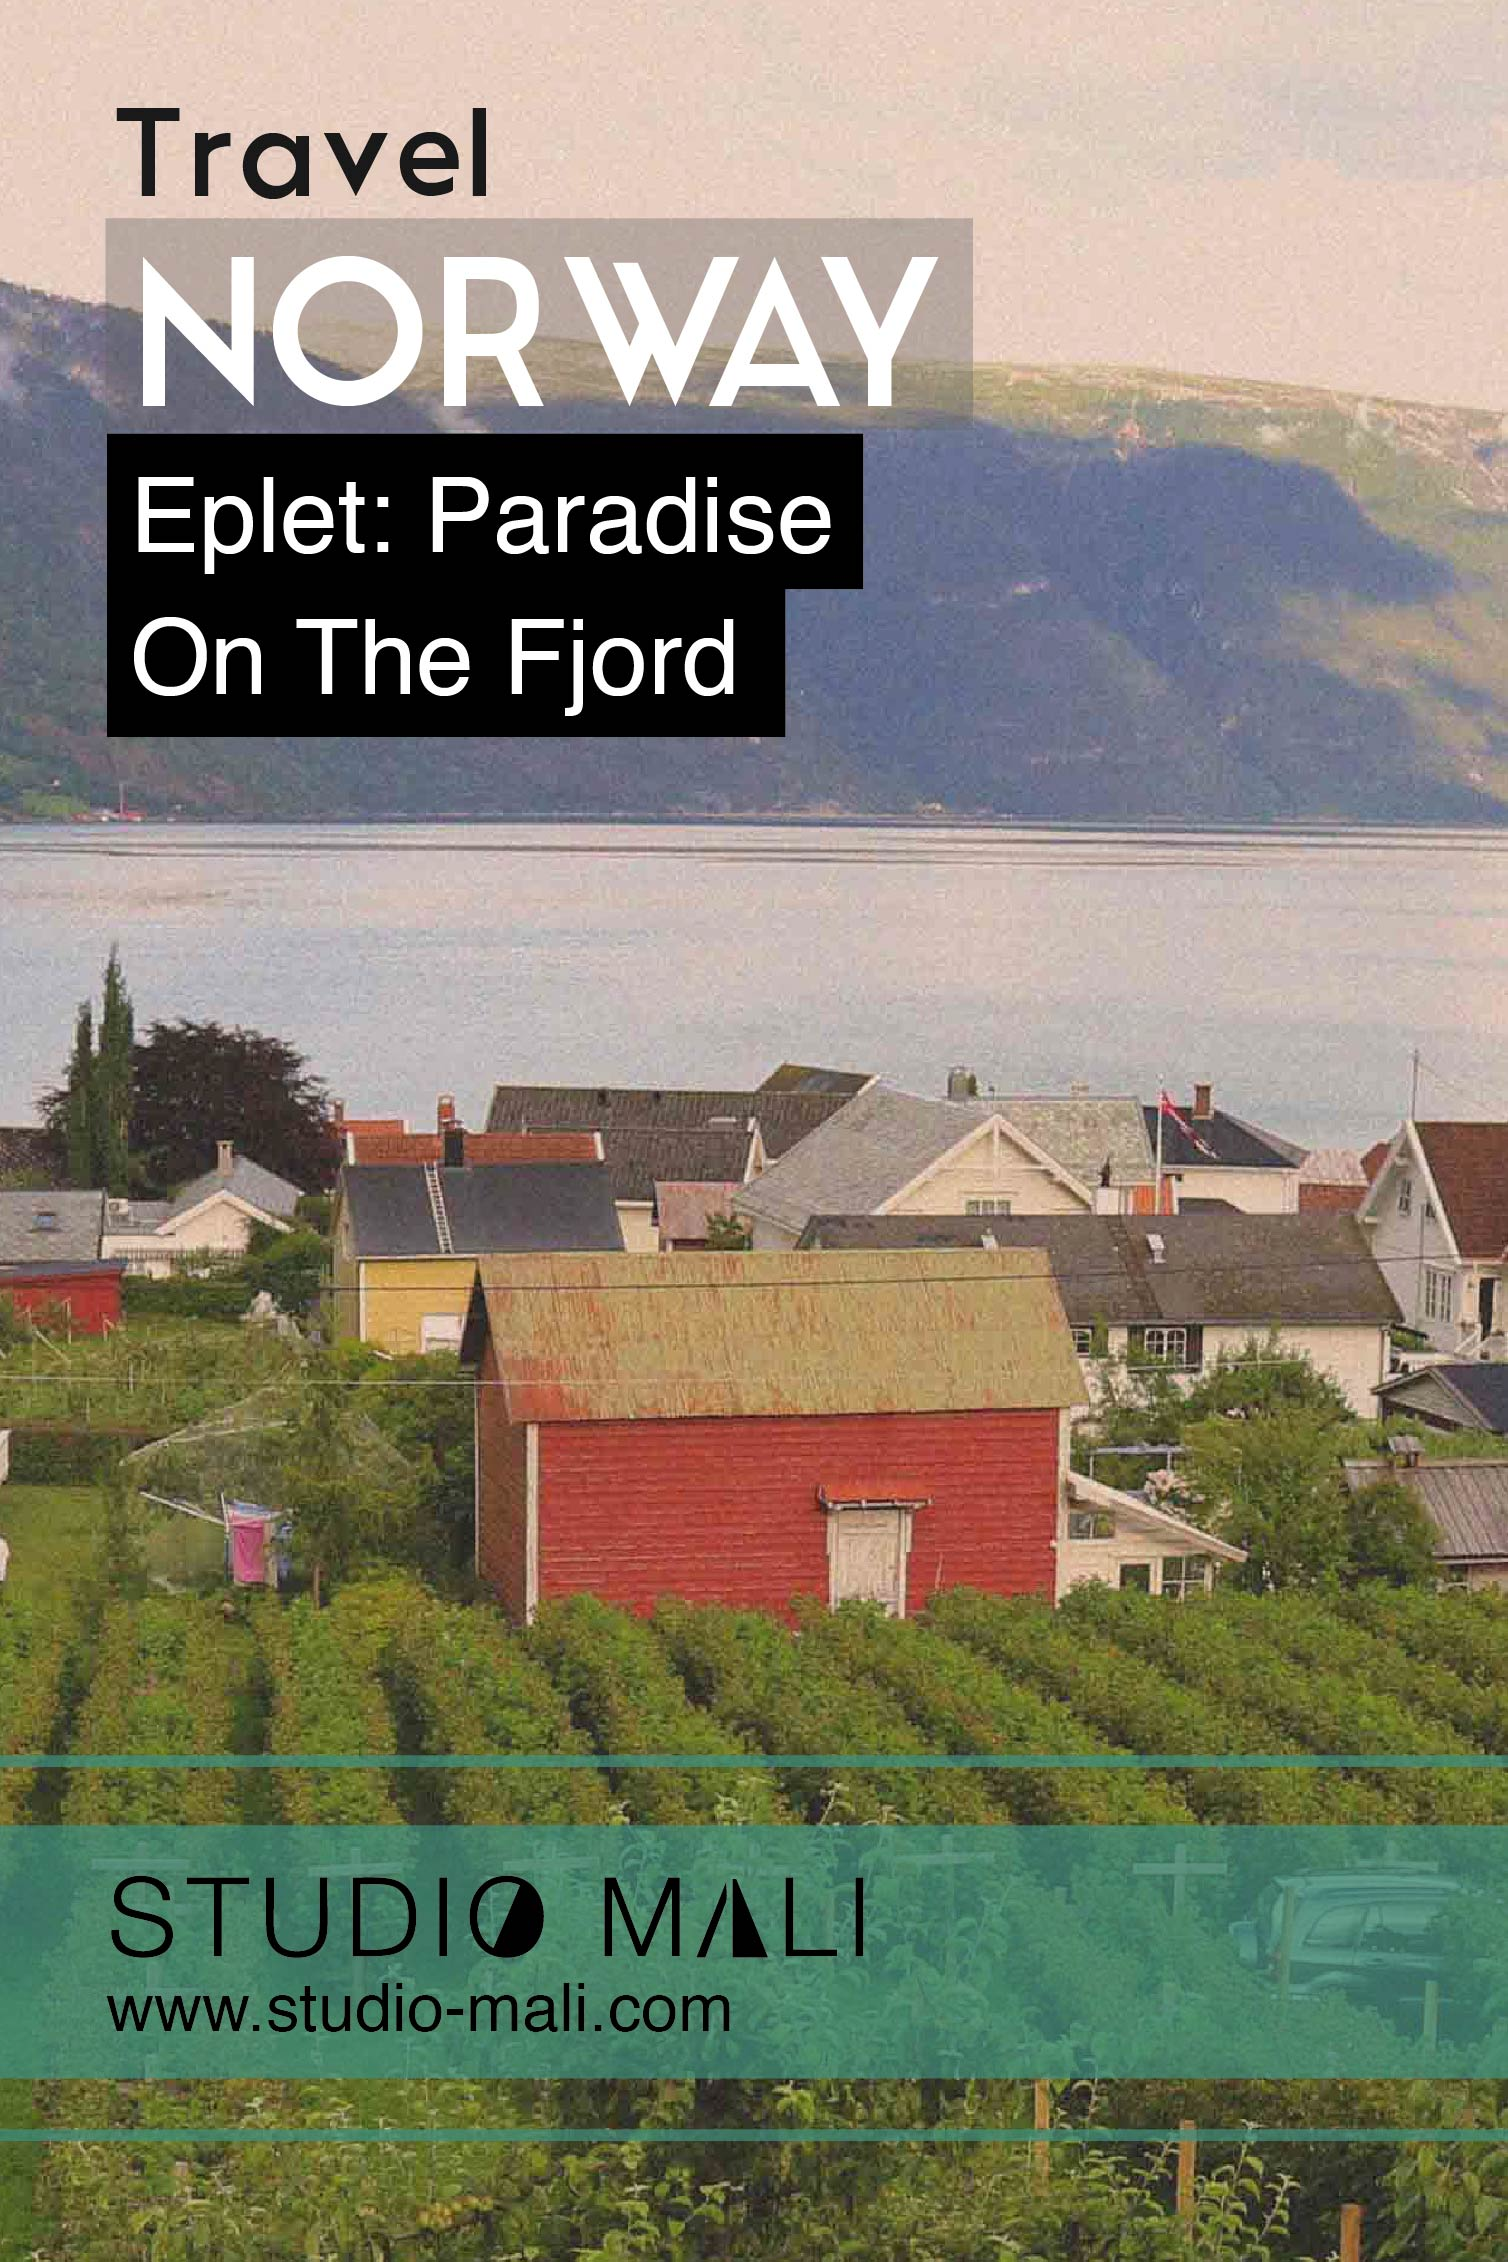 Norway - Eplet - Paradise On The Fjord, by Studio Mali.jpg